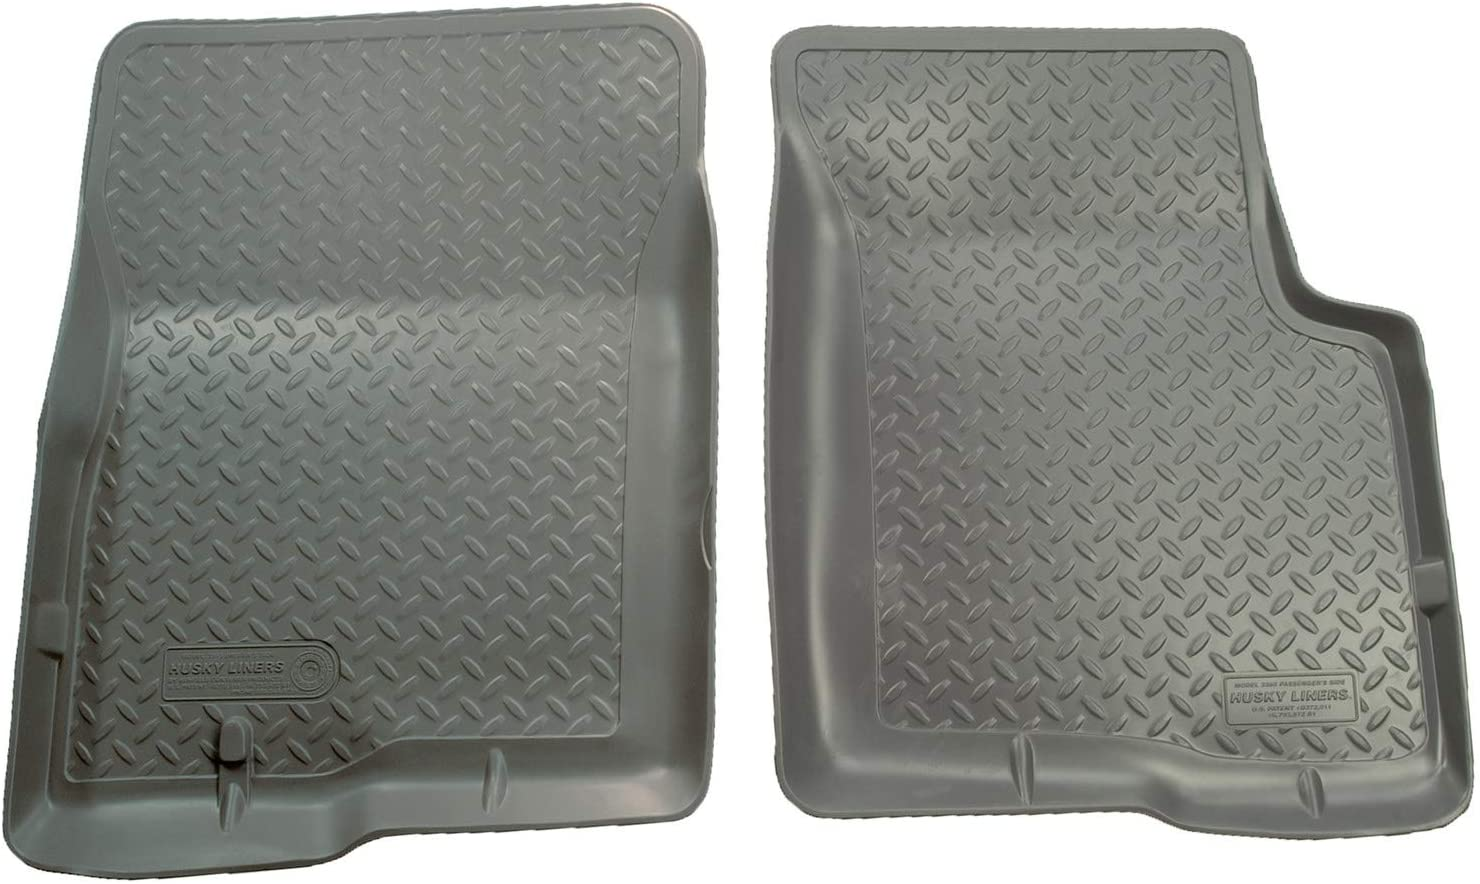 Husky Liners Fits 1997-03 Ford F-150 SuperCab/Standard Cab, 2004 Ford F-150 Heritage SuperCab/Standard Cab Classic Style Front Floor Mats